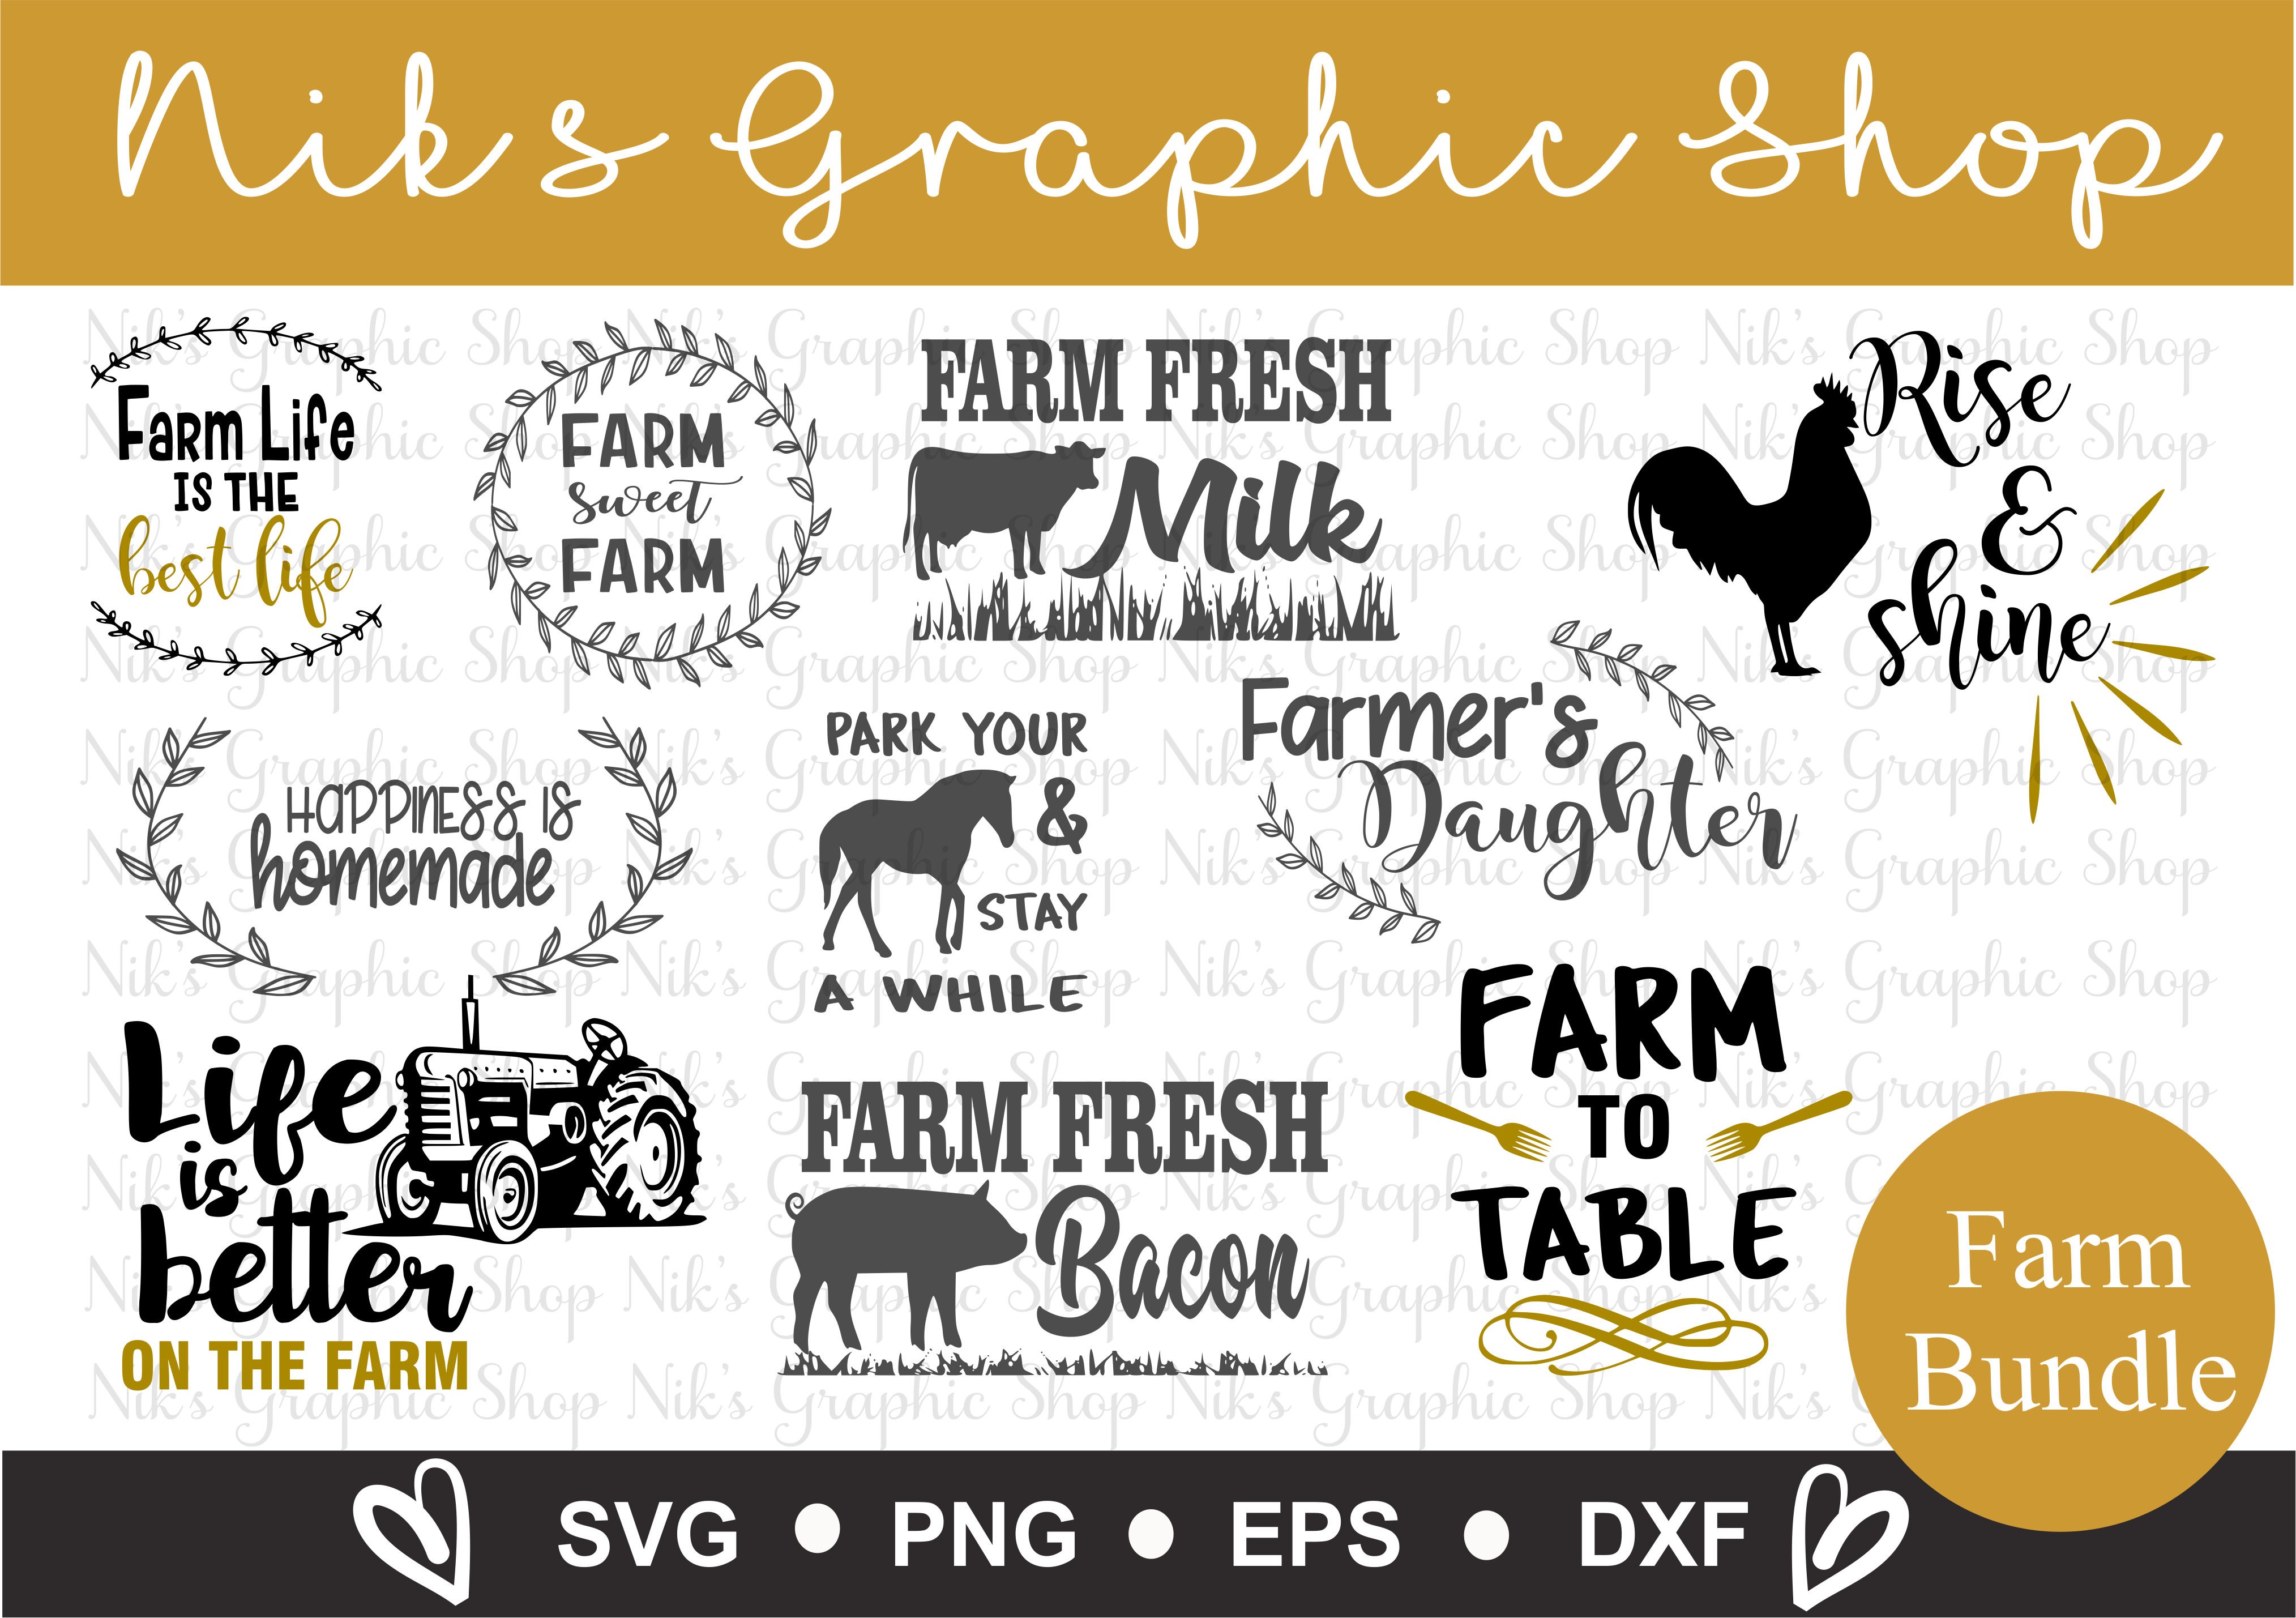 Farm Svgs, Farmers Svgs, Farmers Daughter Svg, Farm sweet example image 1